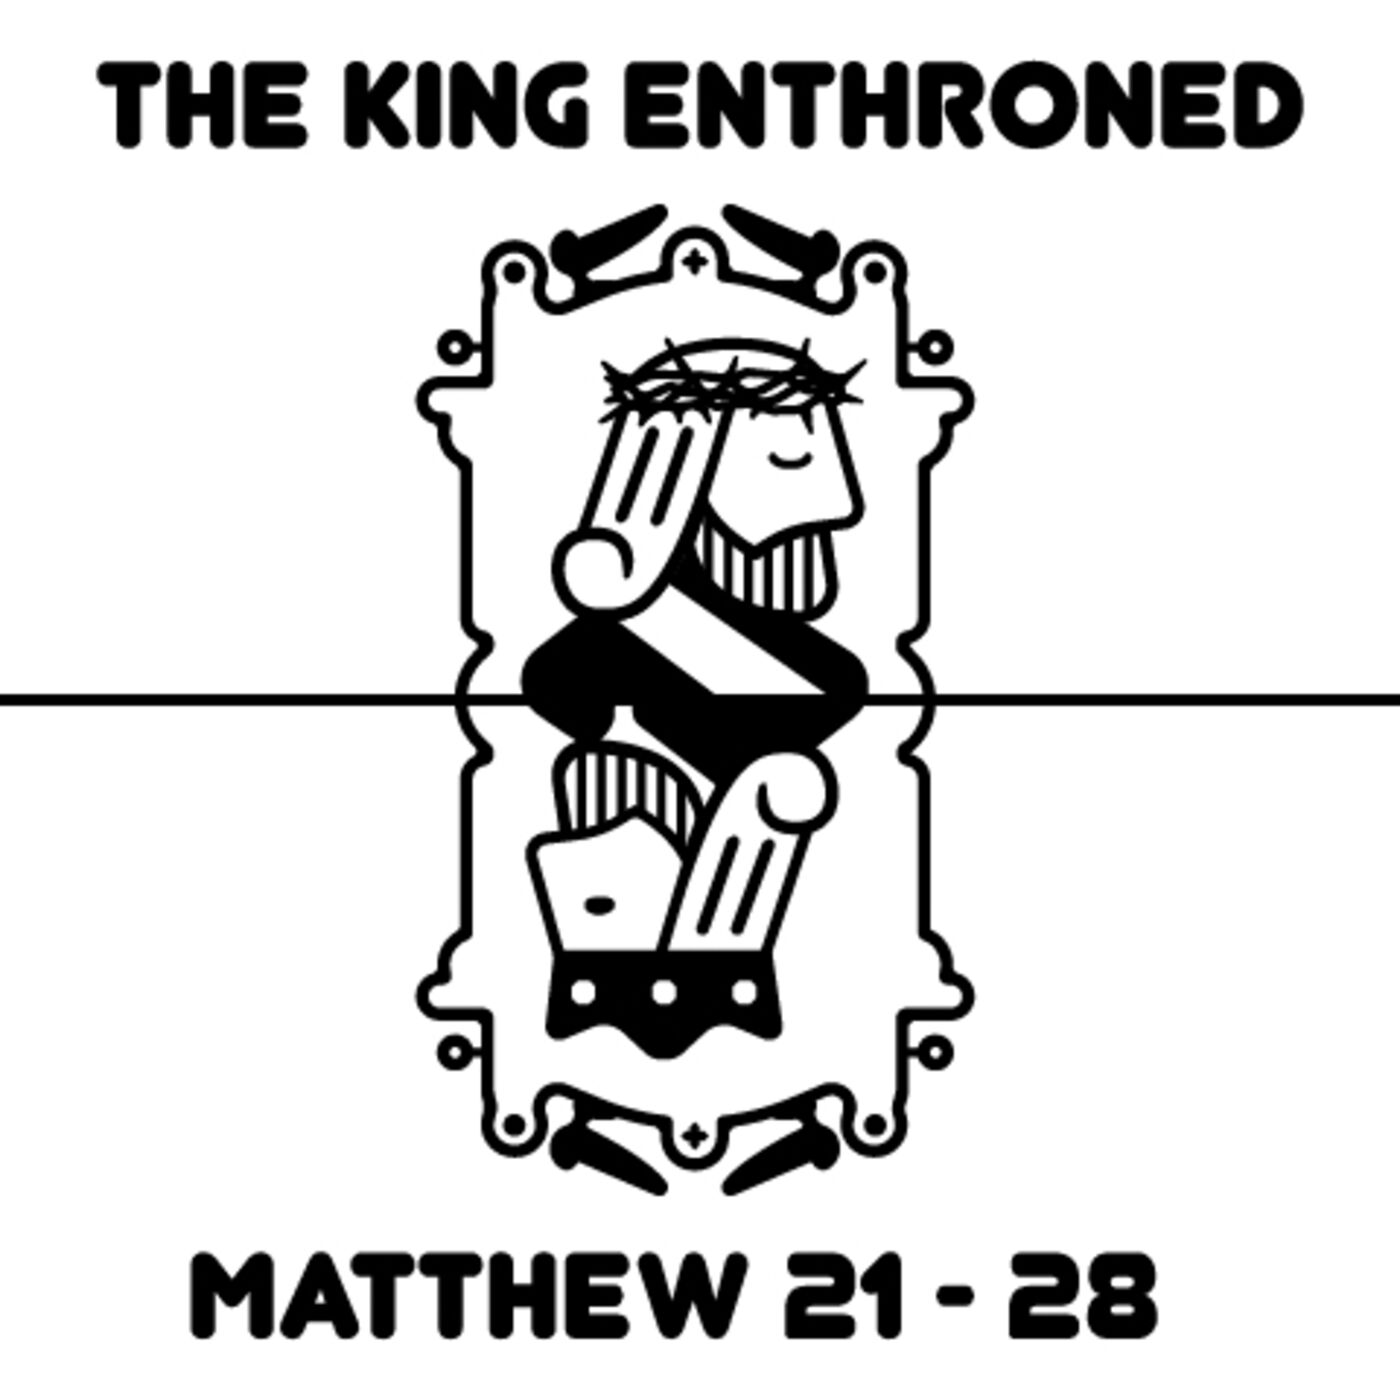 Matthew: The King's Judgement